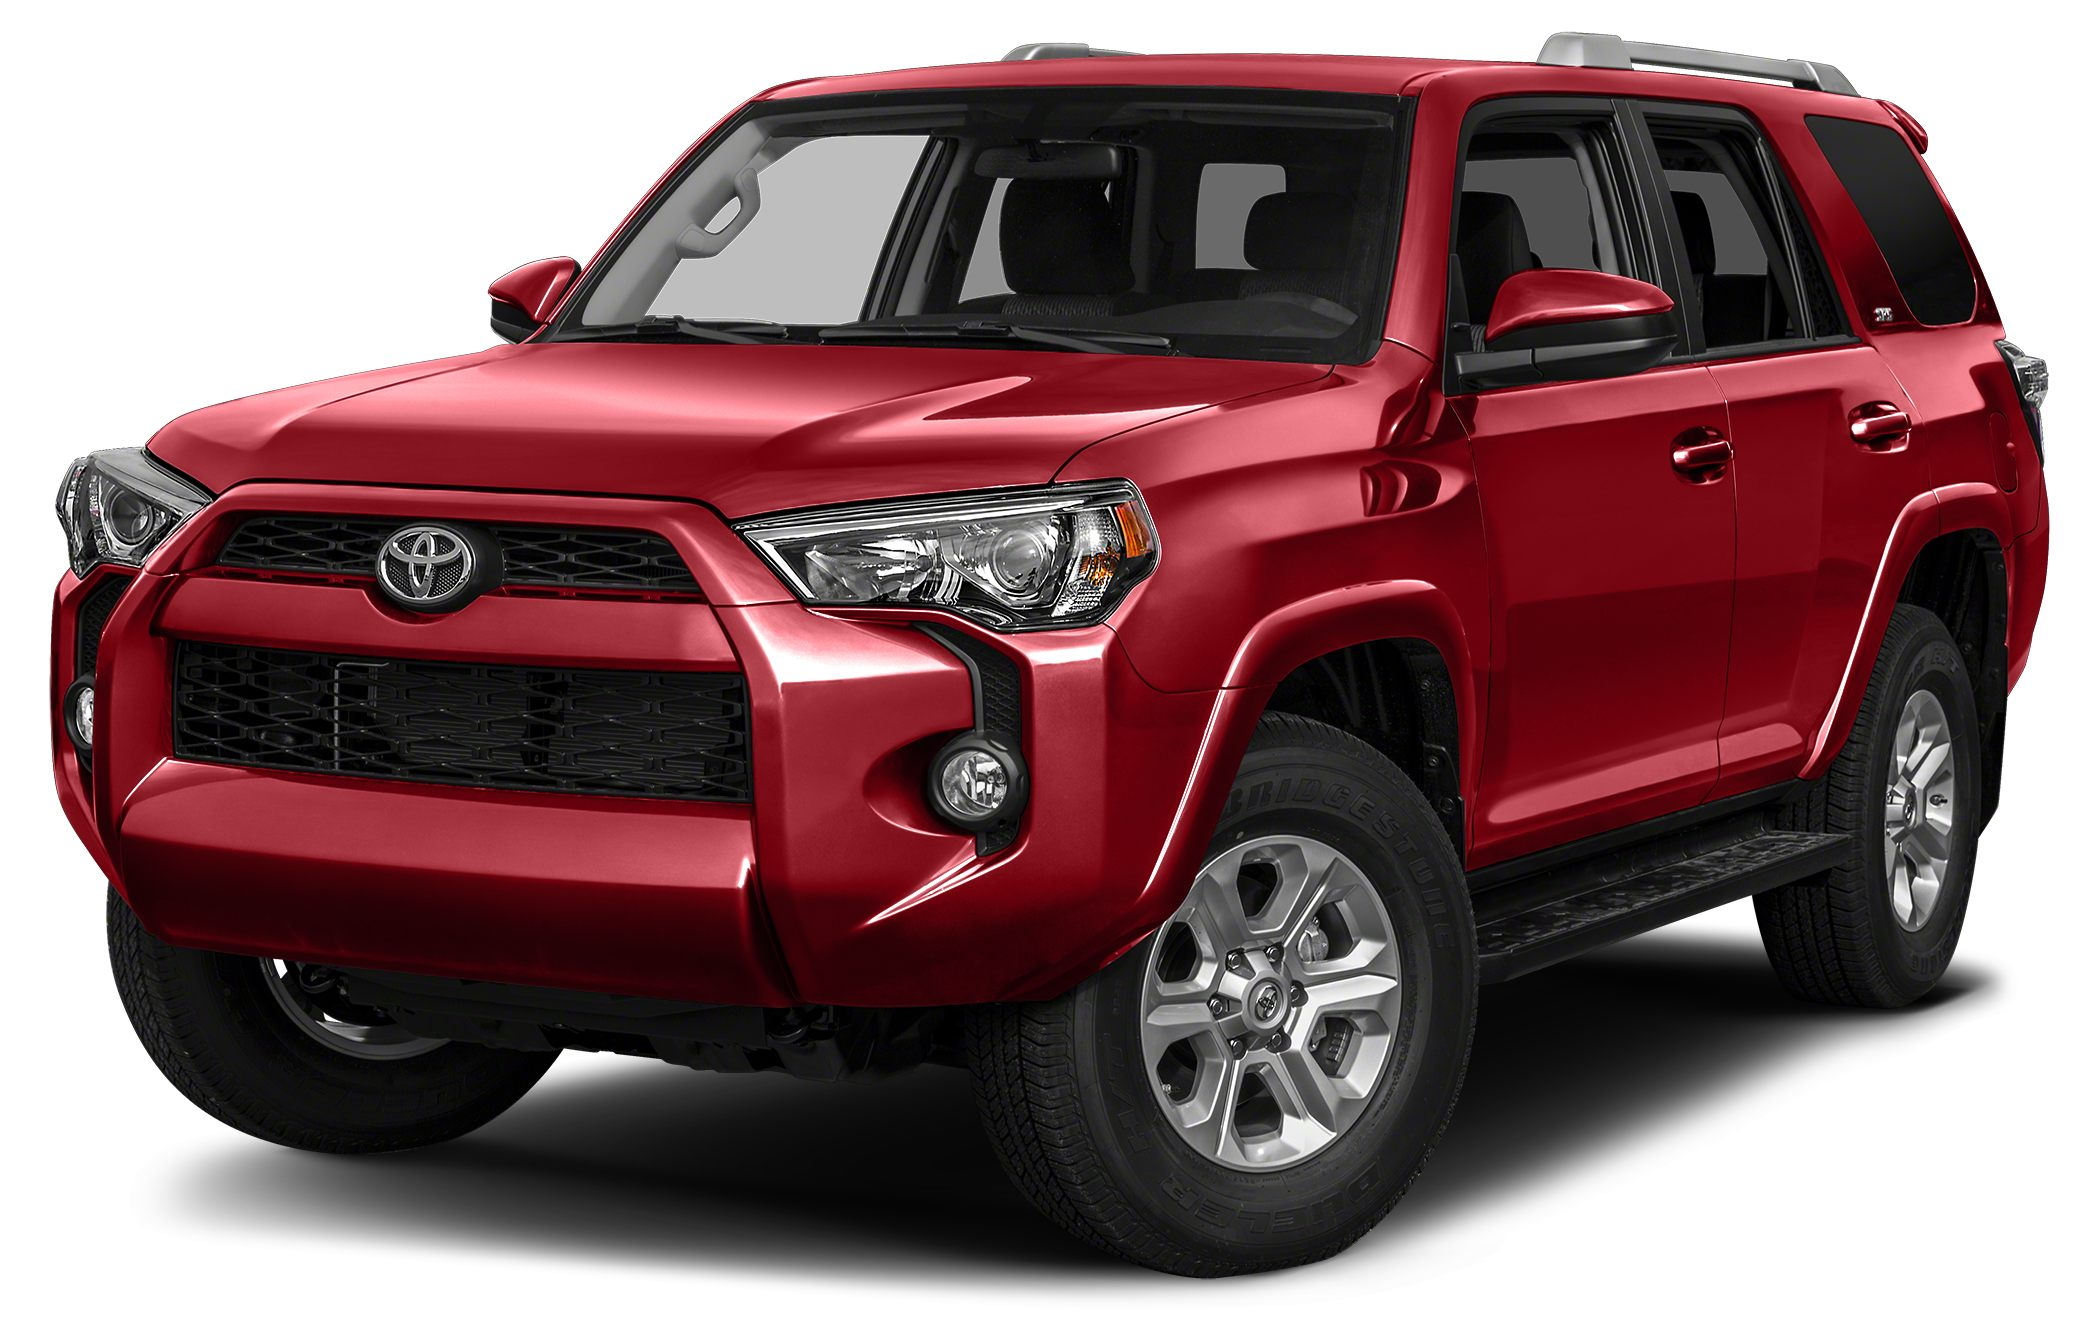 2016 Toyota 4Runner SR5 Premium Westboro Toyota is proud to present HASSLE FREE BUYING EXPERIENCE